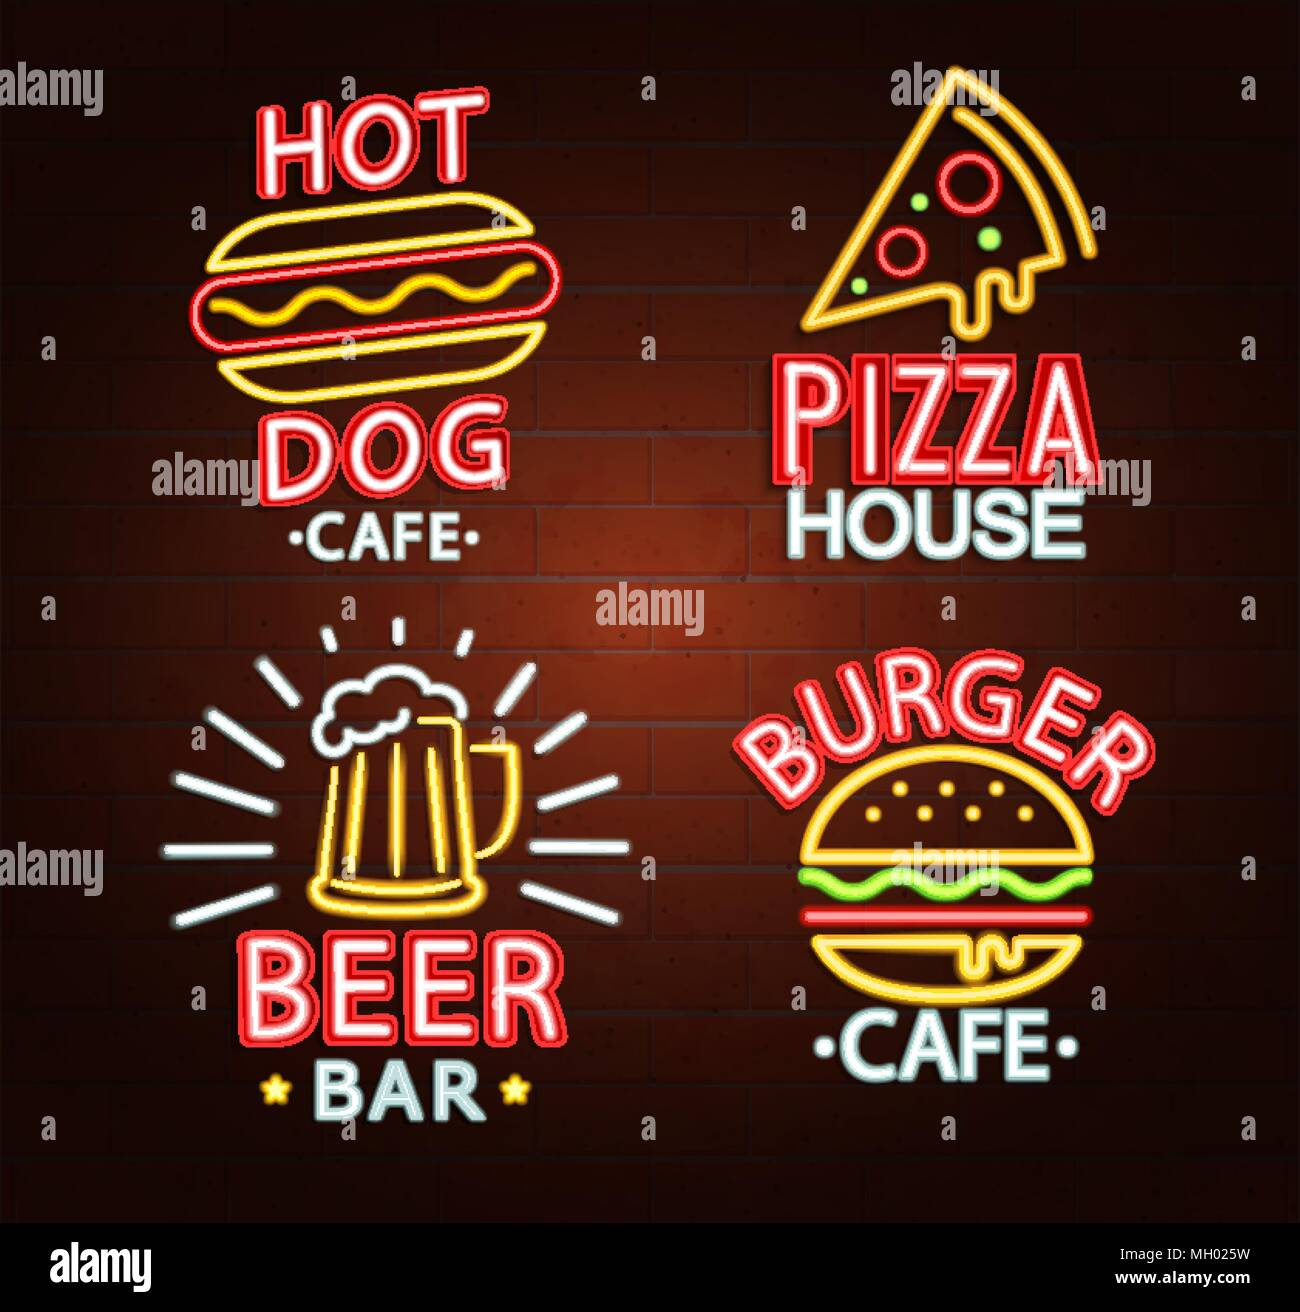 set of neon signs of beer bar hot dog cafe pizza house. Black Bedroom Furniture Sets. Home Design Ideas